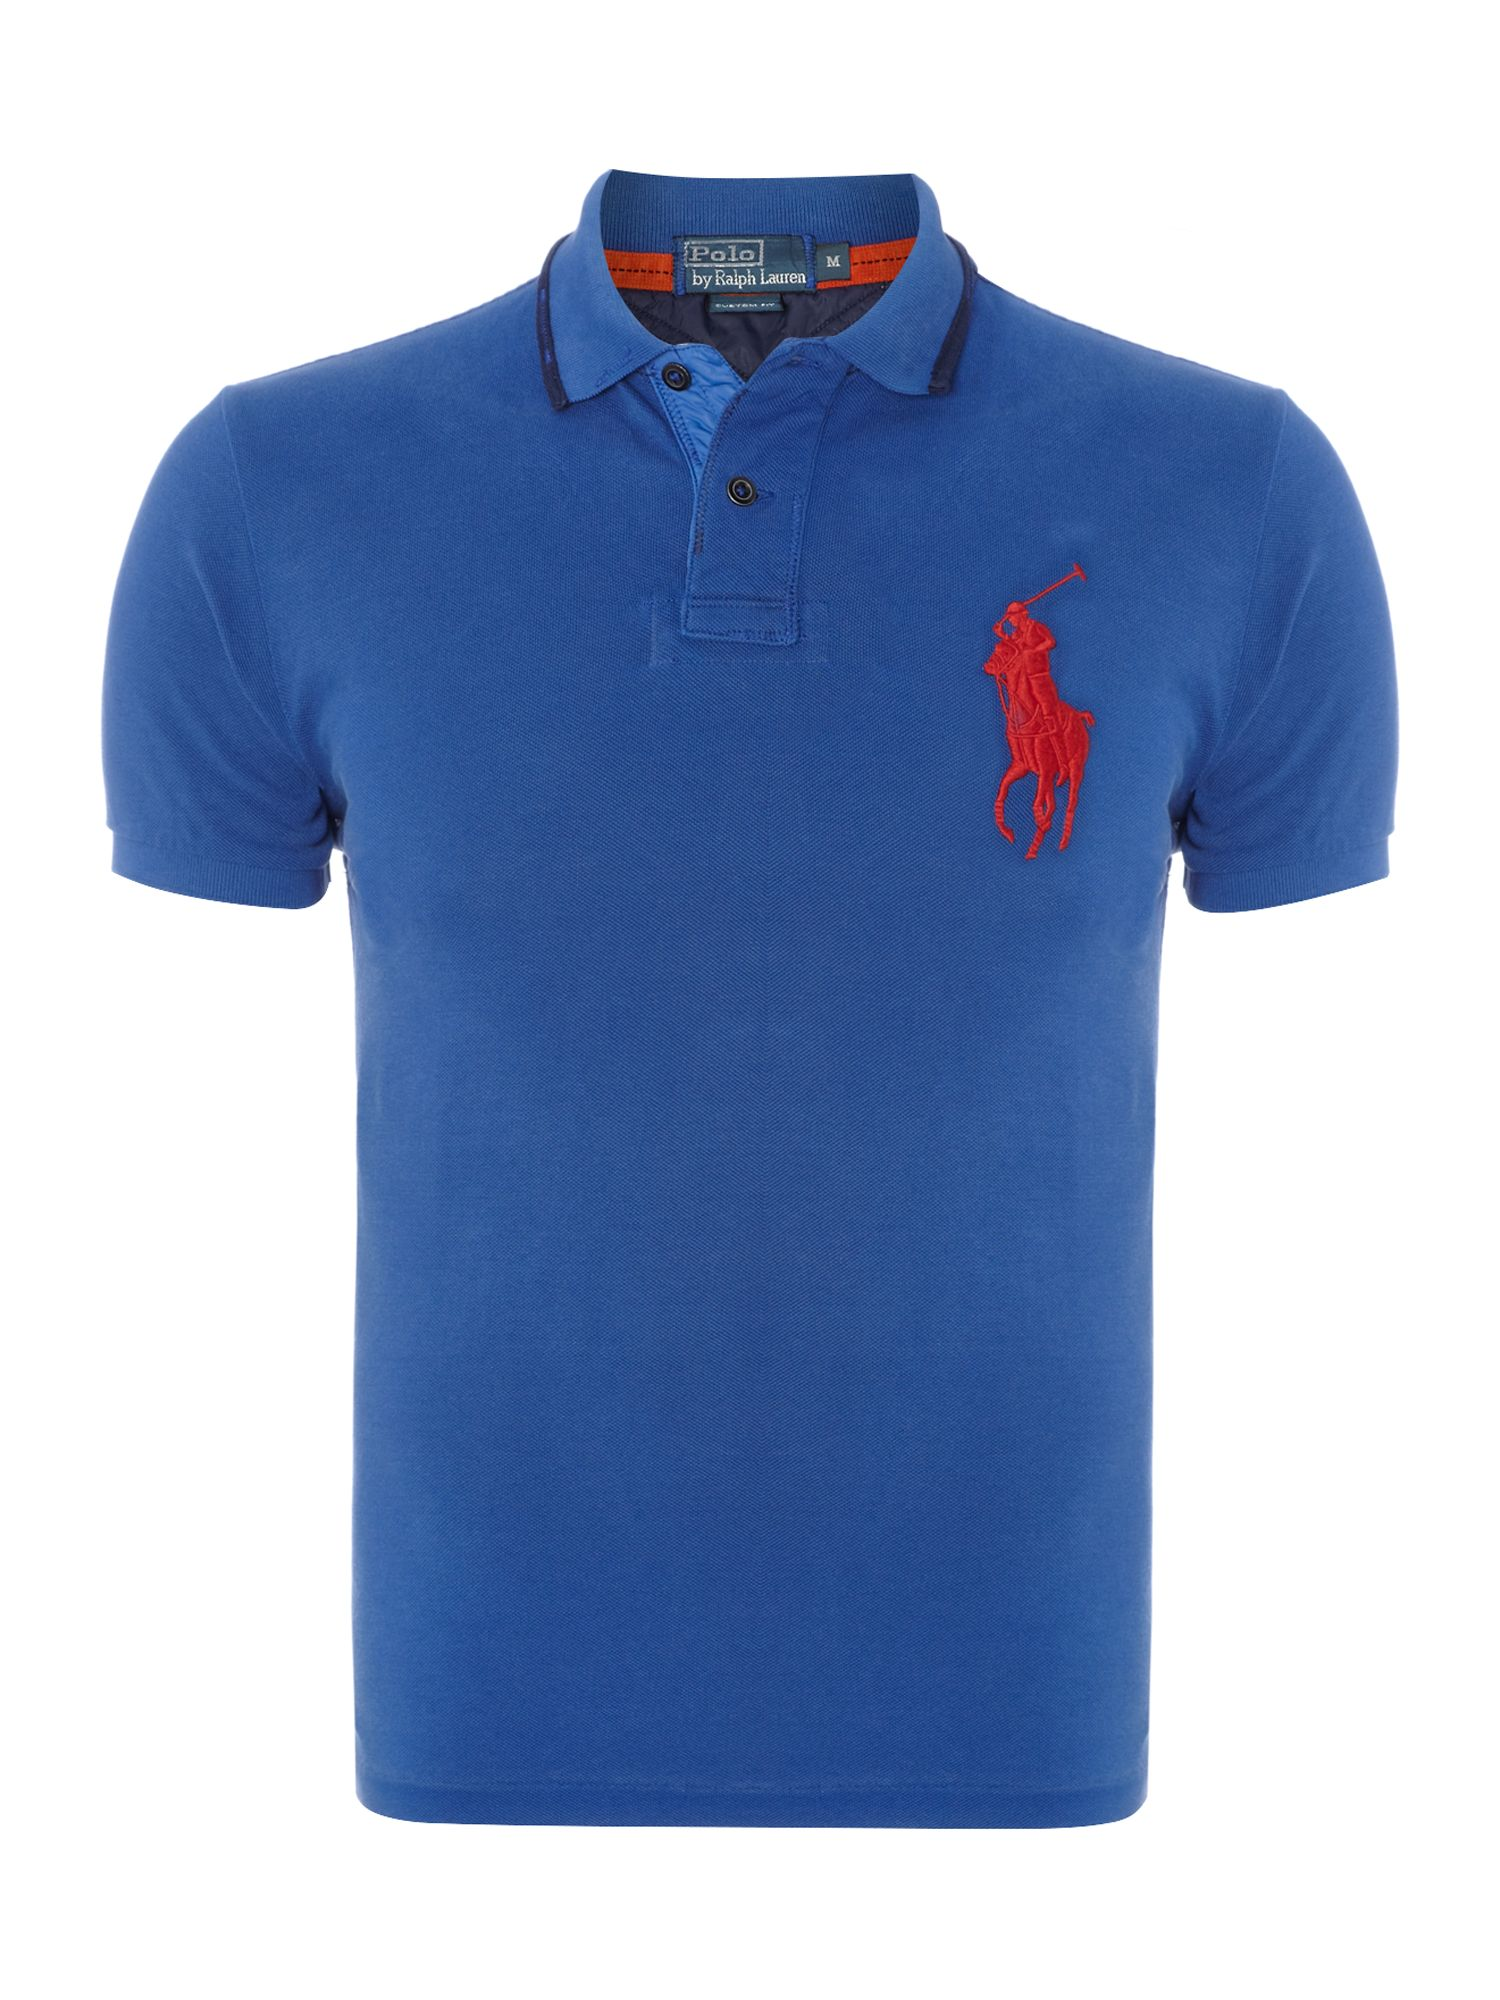 Big pony rugged custom fit polo shirt